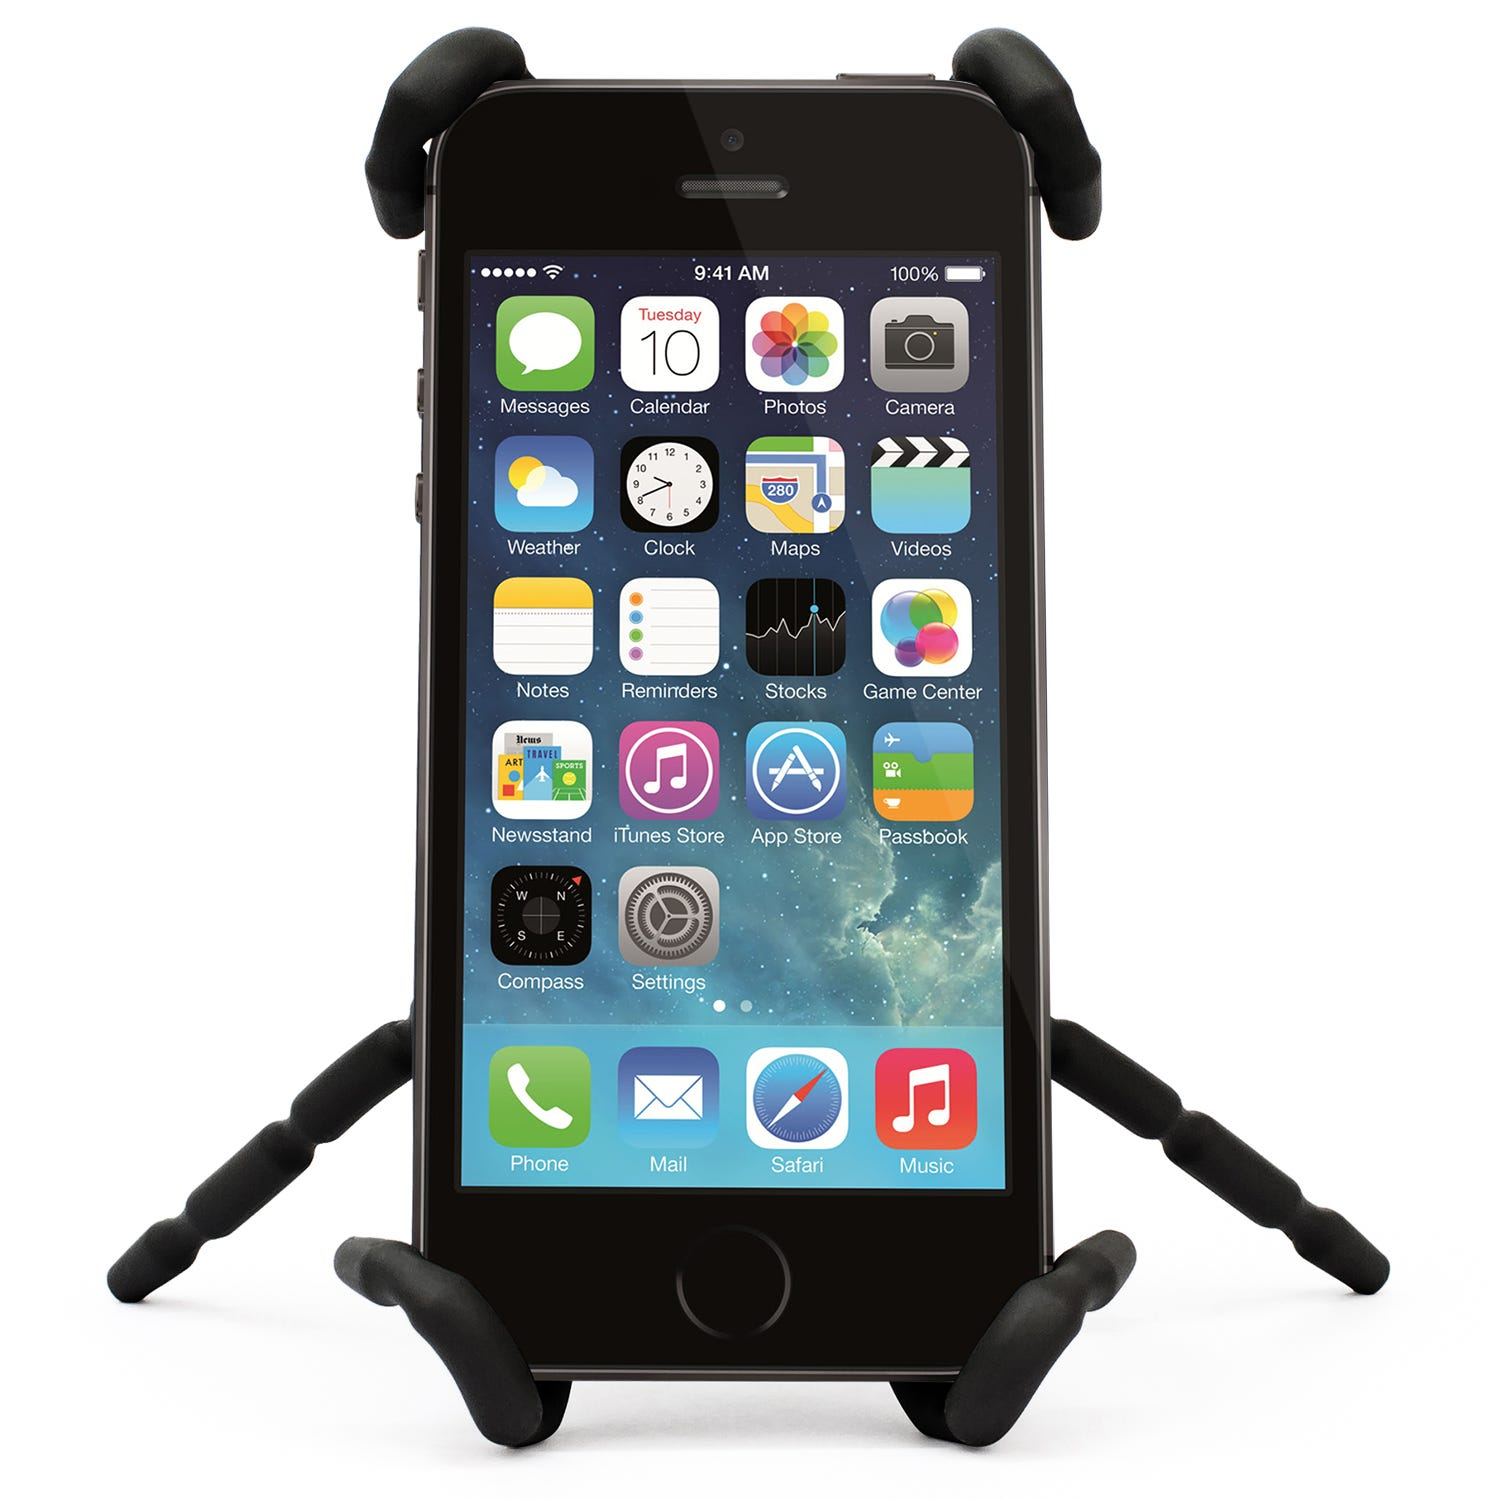 Compare prices for Breffo Spiderpodium Smartphone Stand and Holder